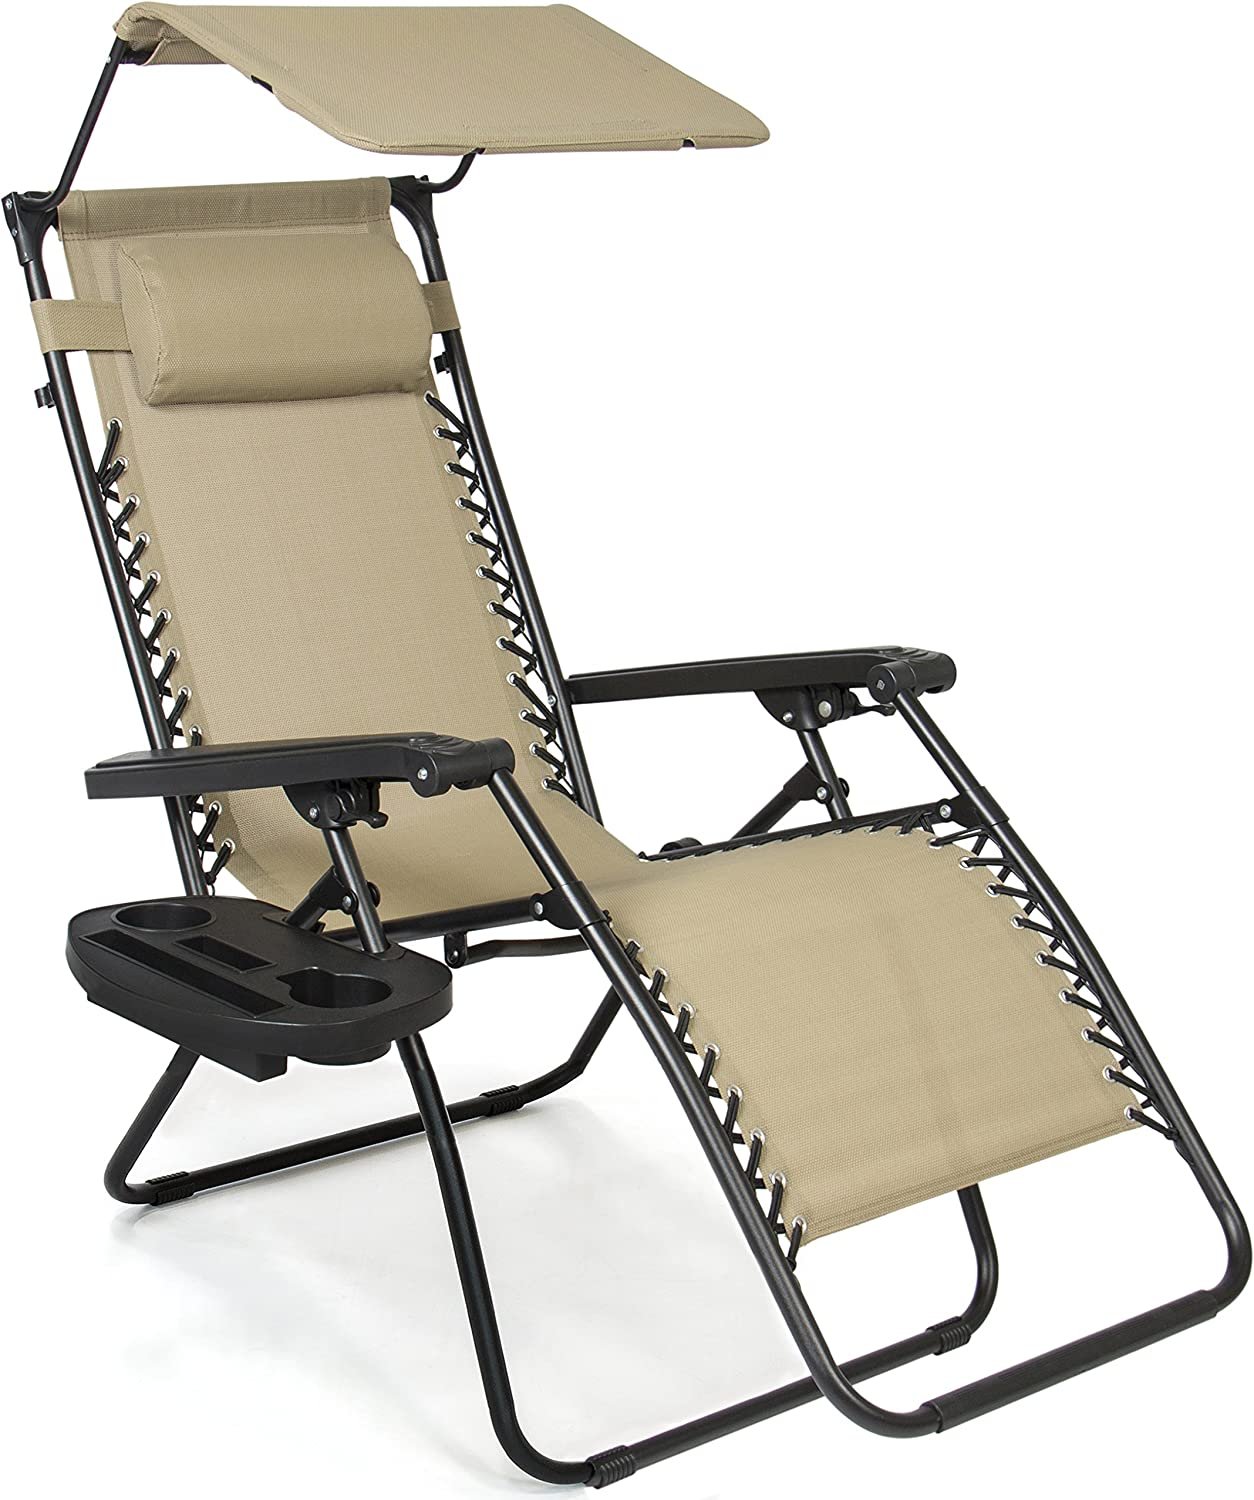 Best Choice Products Zero Gravity Chair with Canopy Sun Shade - Tan